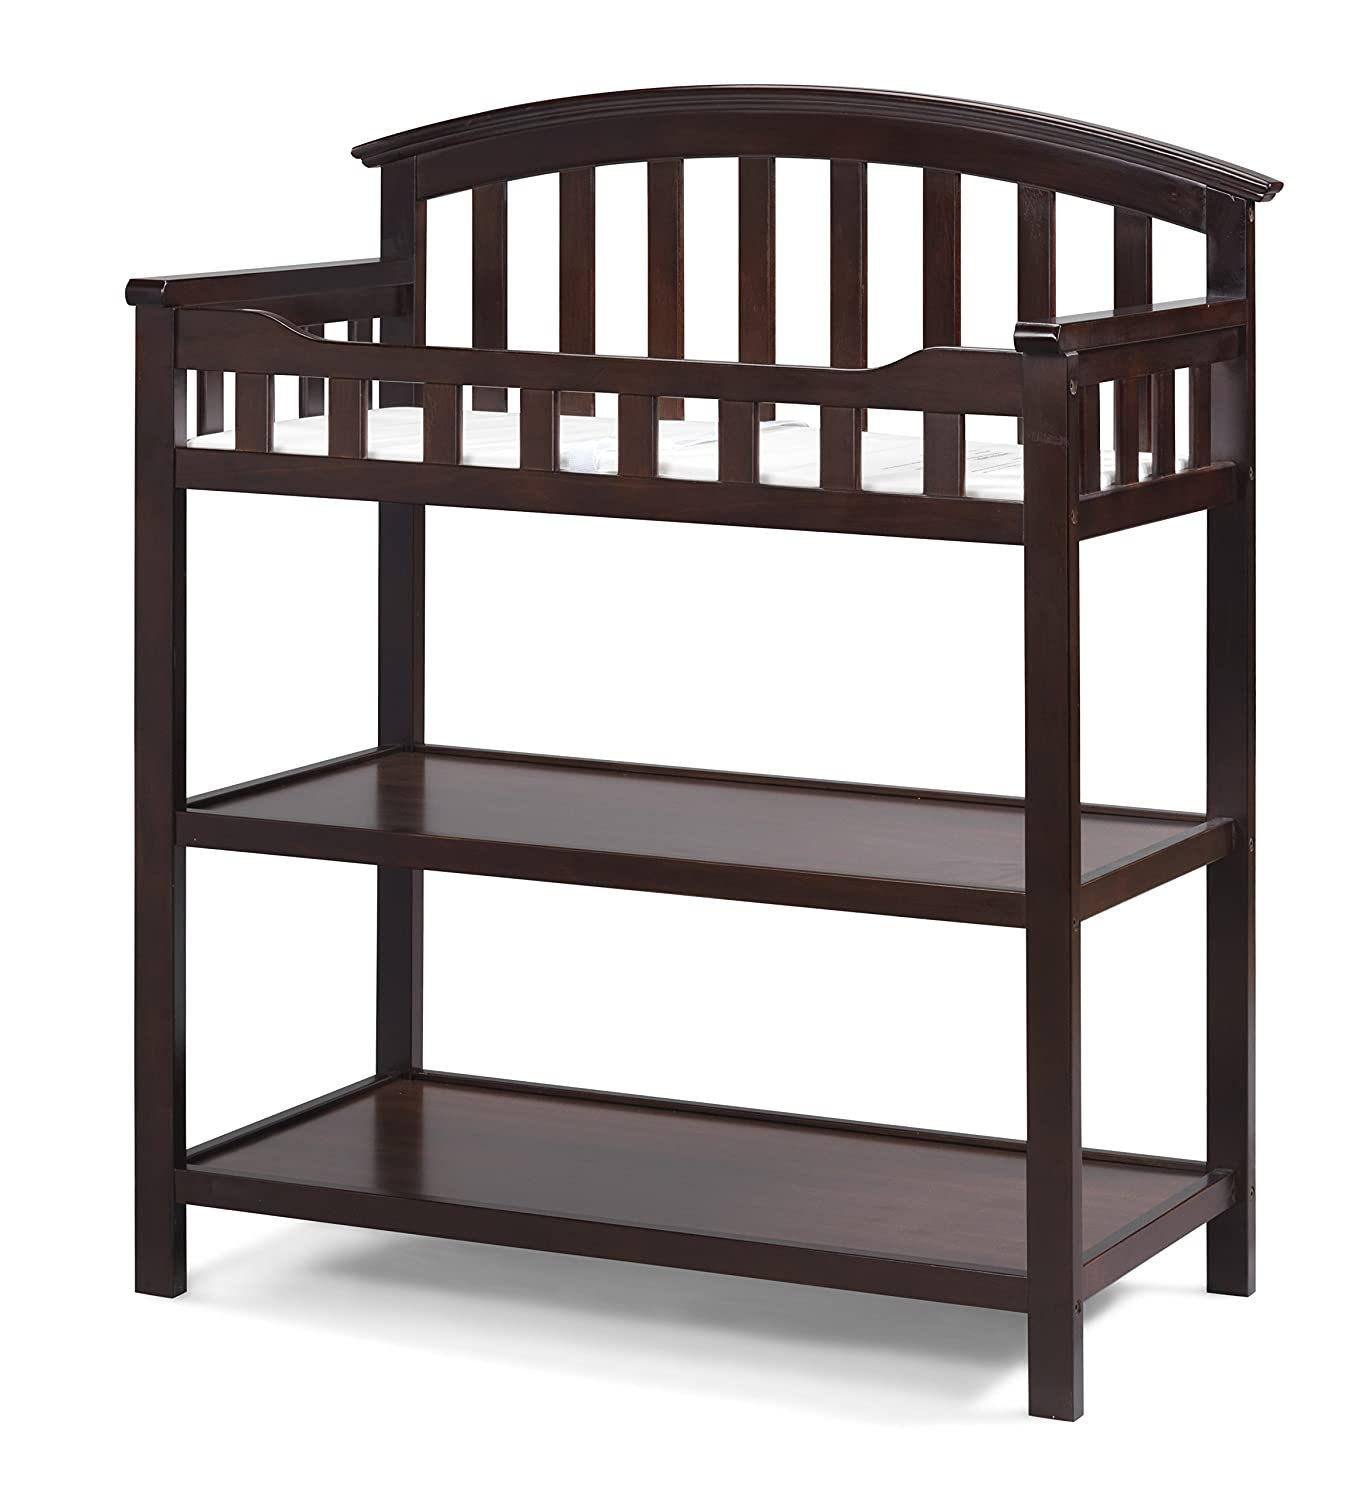 Amazon.com : Graco Changing Table, Espresso, Nursery Changing Table For  Infants Or Babies, Includes Water Resistant Changing Pad And Safety Strap,  ...